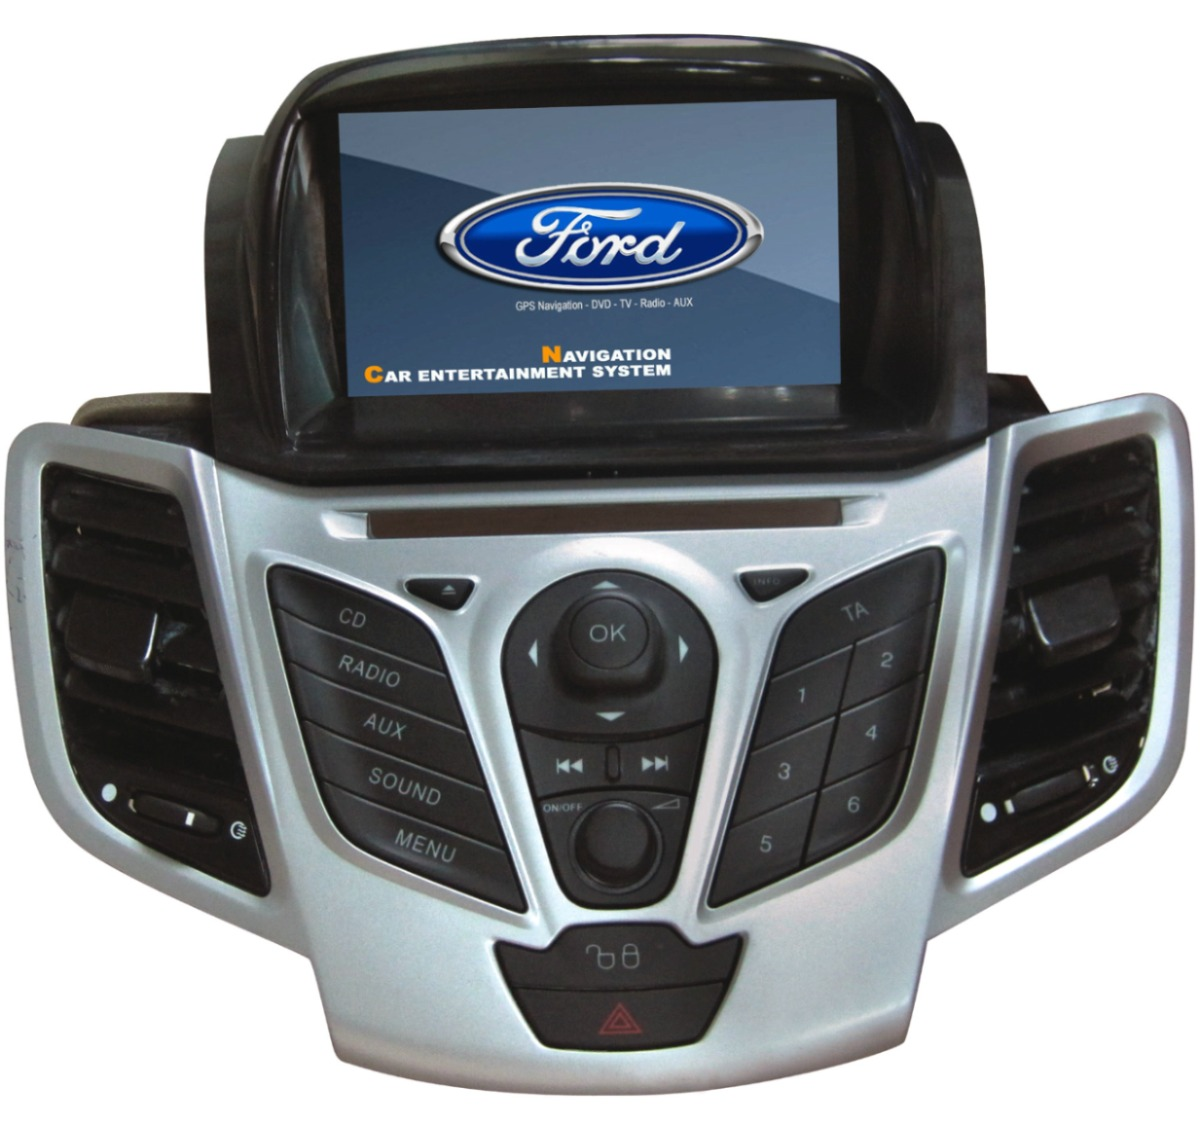 radio multimedia gps ford fiesta 2008 2011 u s 890 00 en mercado libre. Black Bedroom Furniture Sets. Home Design Ideas